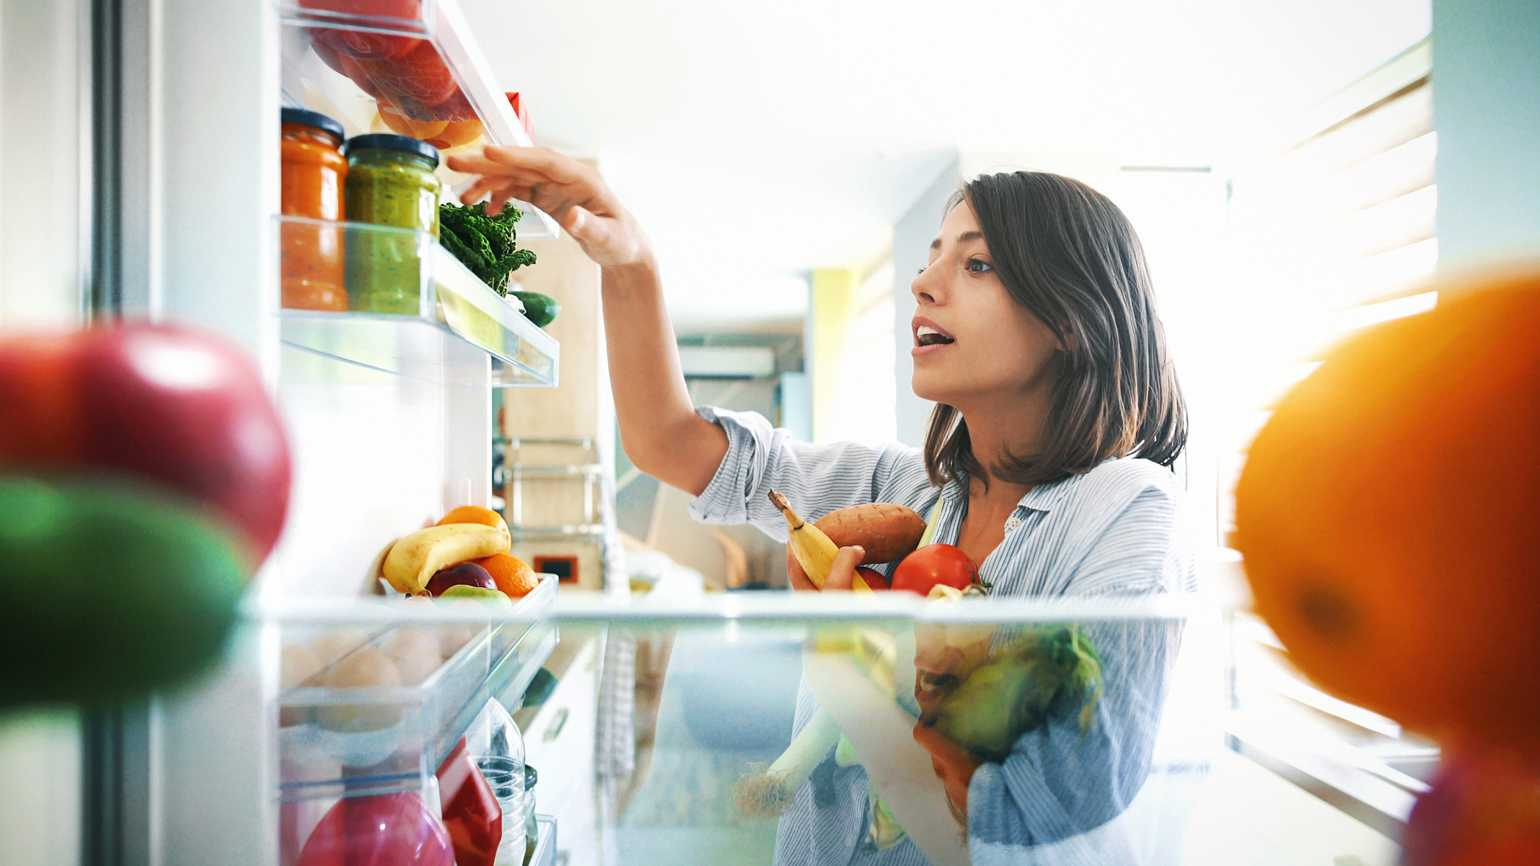 A woman sorting out her fridge with healthy foods.